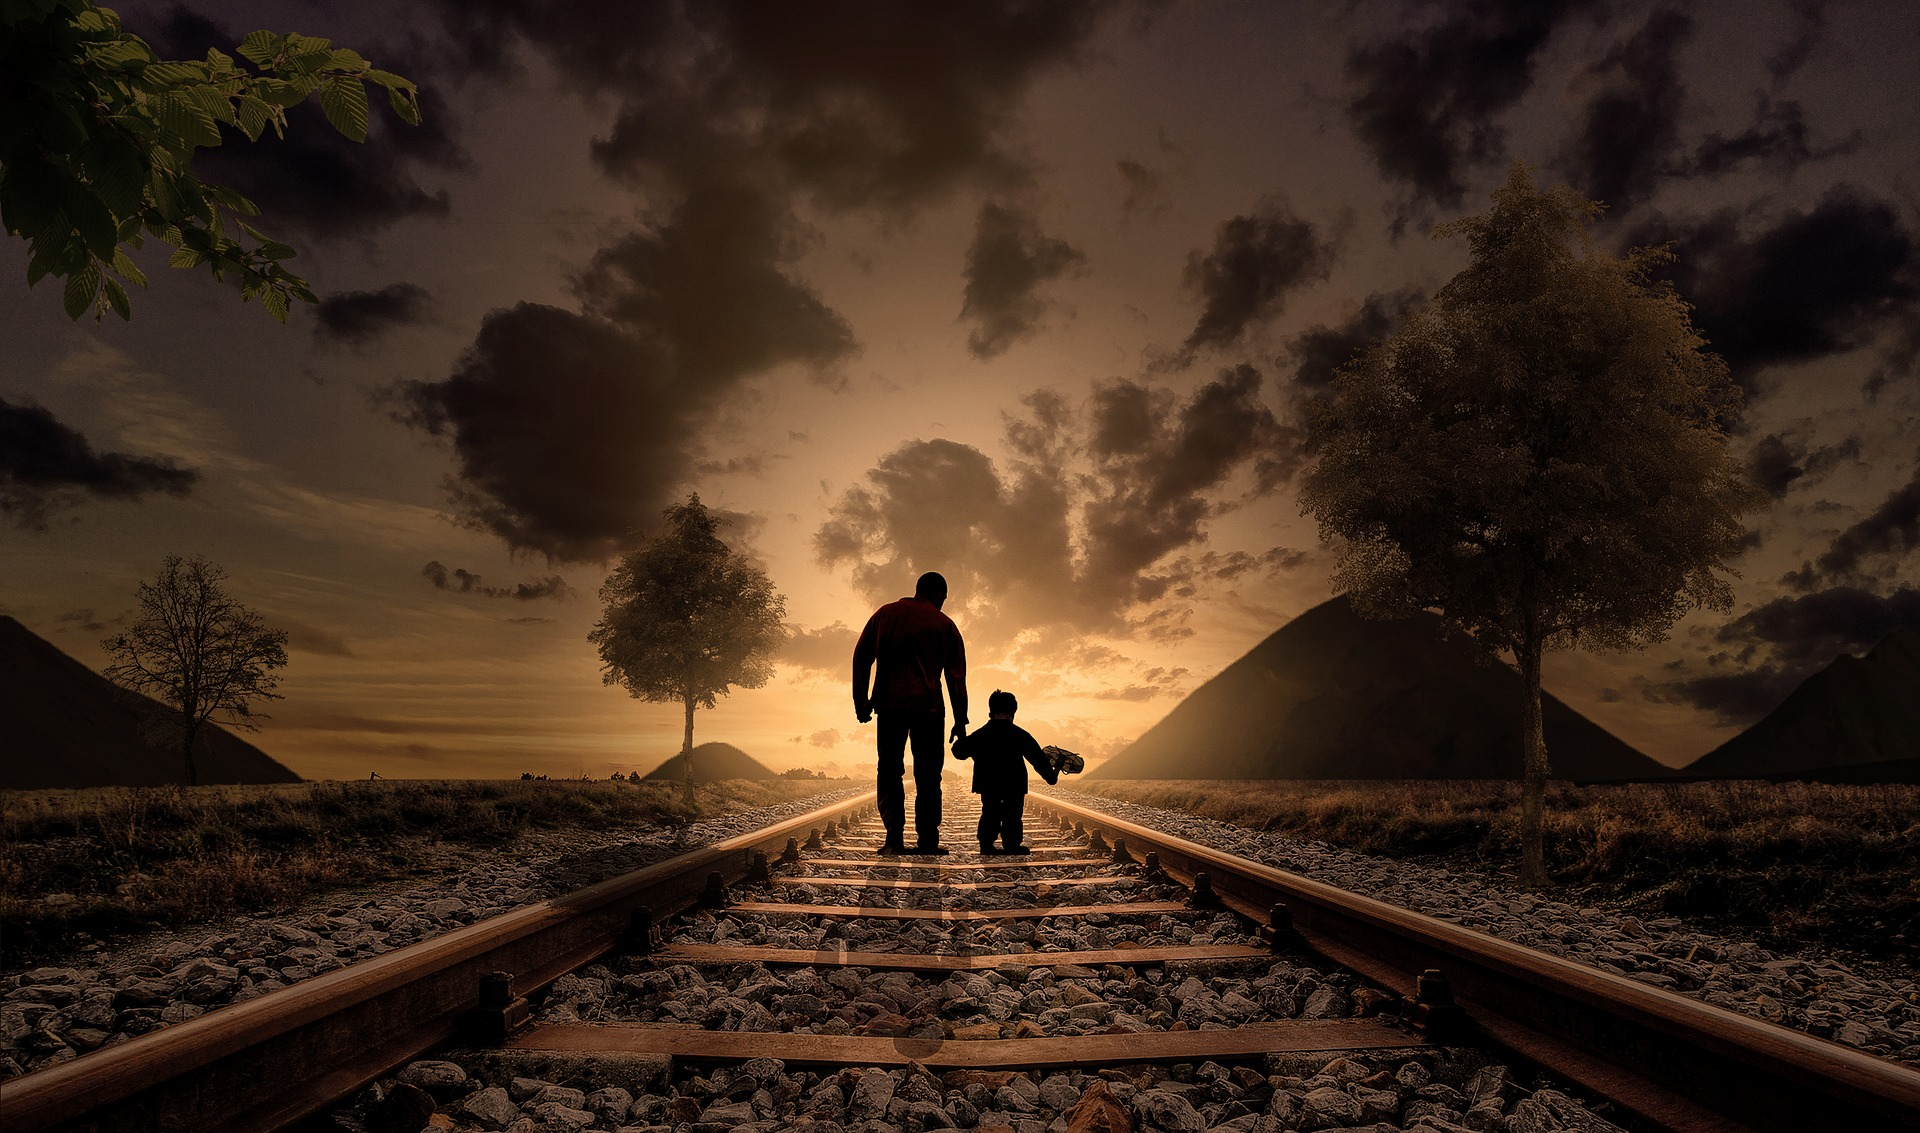 Father and son walking on the railway